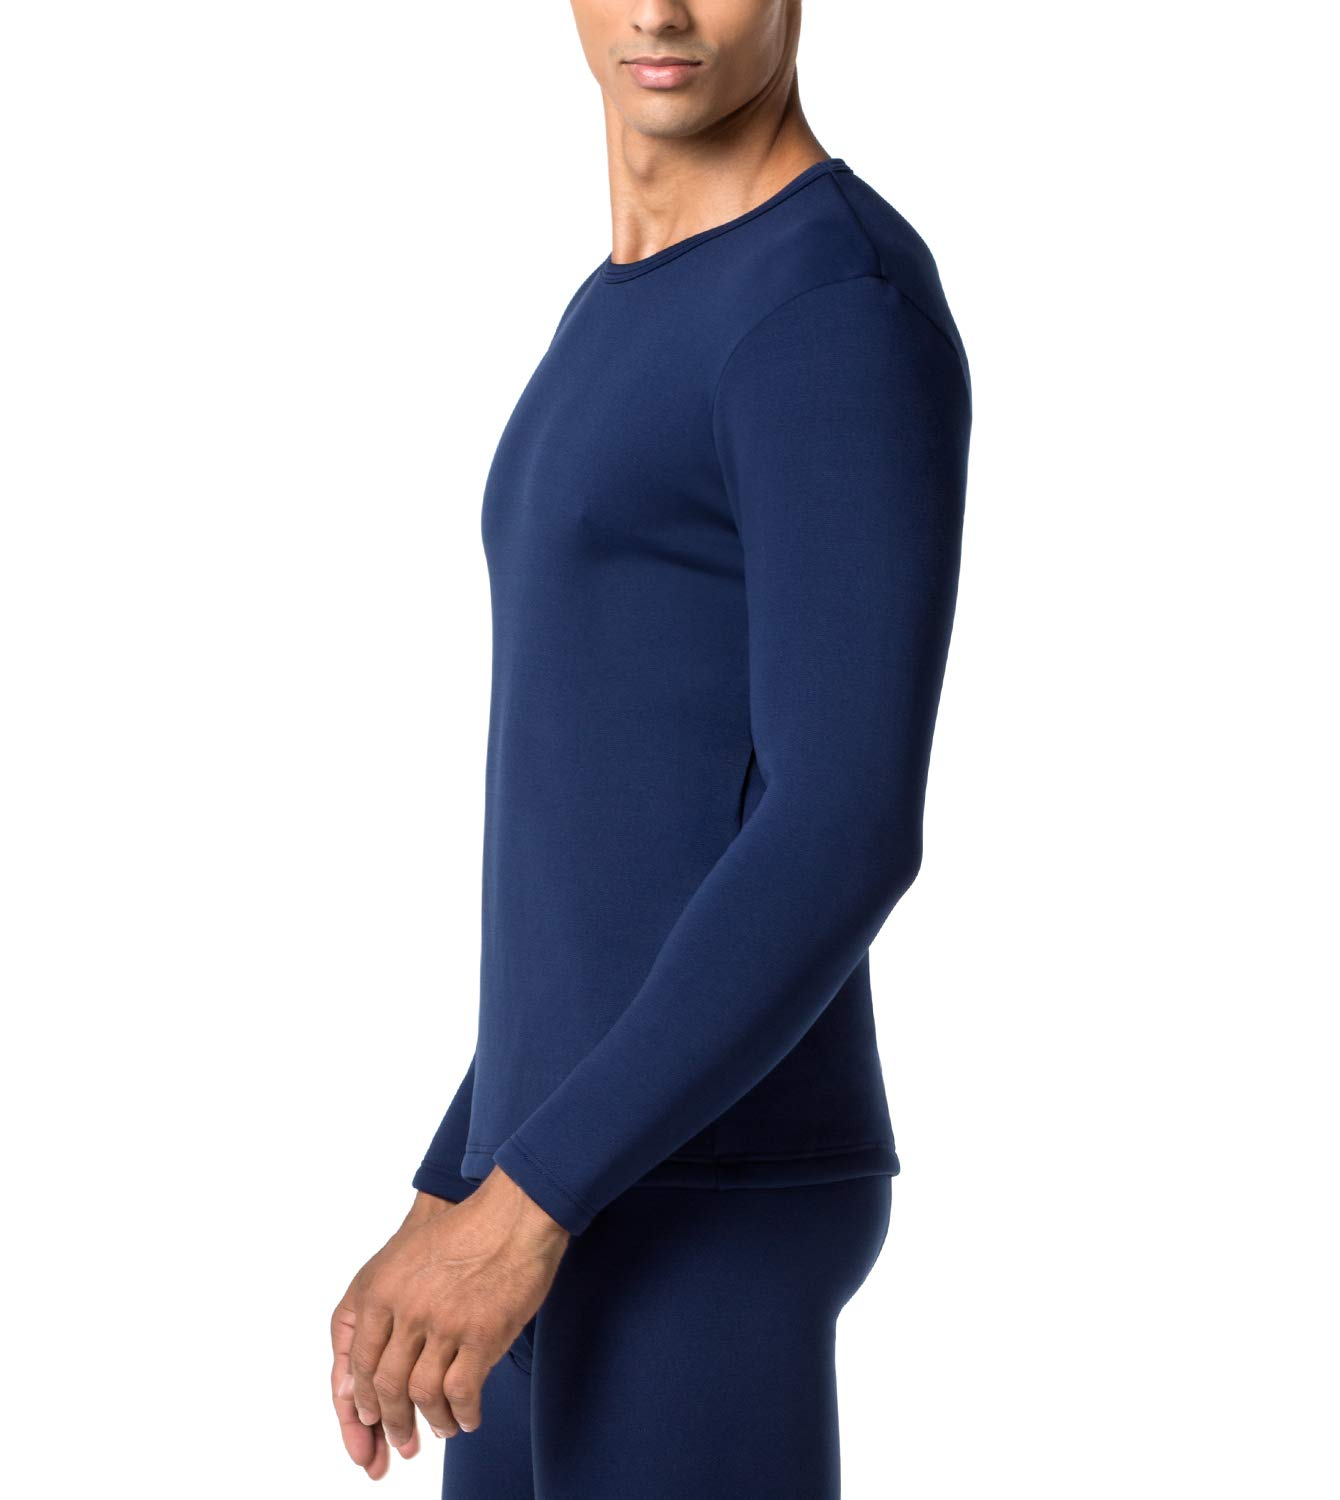 LAPASA Men's Heavyweight Thermal Underwear Top Fleece Lined Base Layer Long Sleeve Shirt M26 Navy,S Chest 35''-37'' Sleeve 22'' by LAPASA